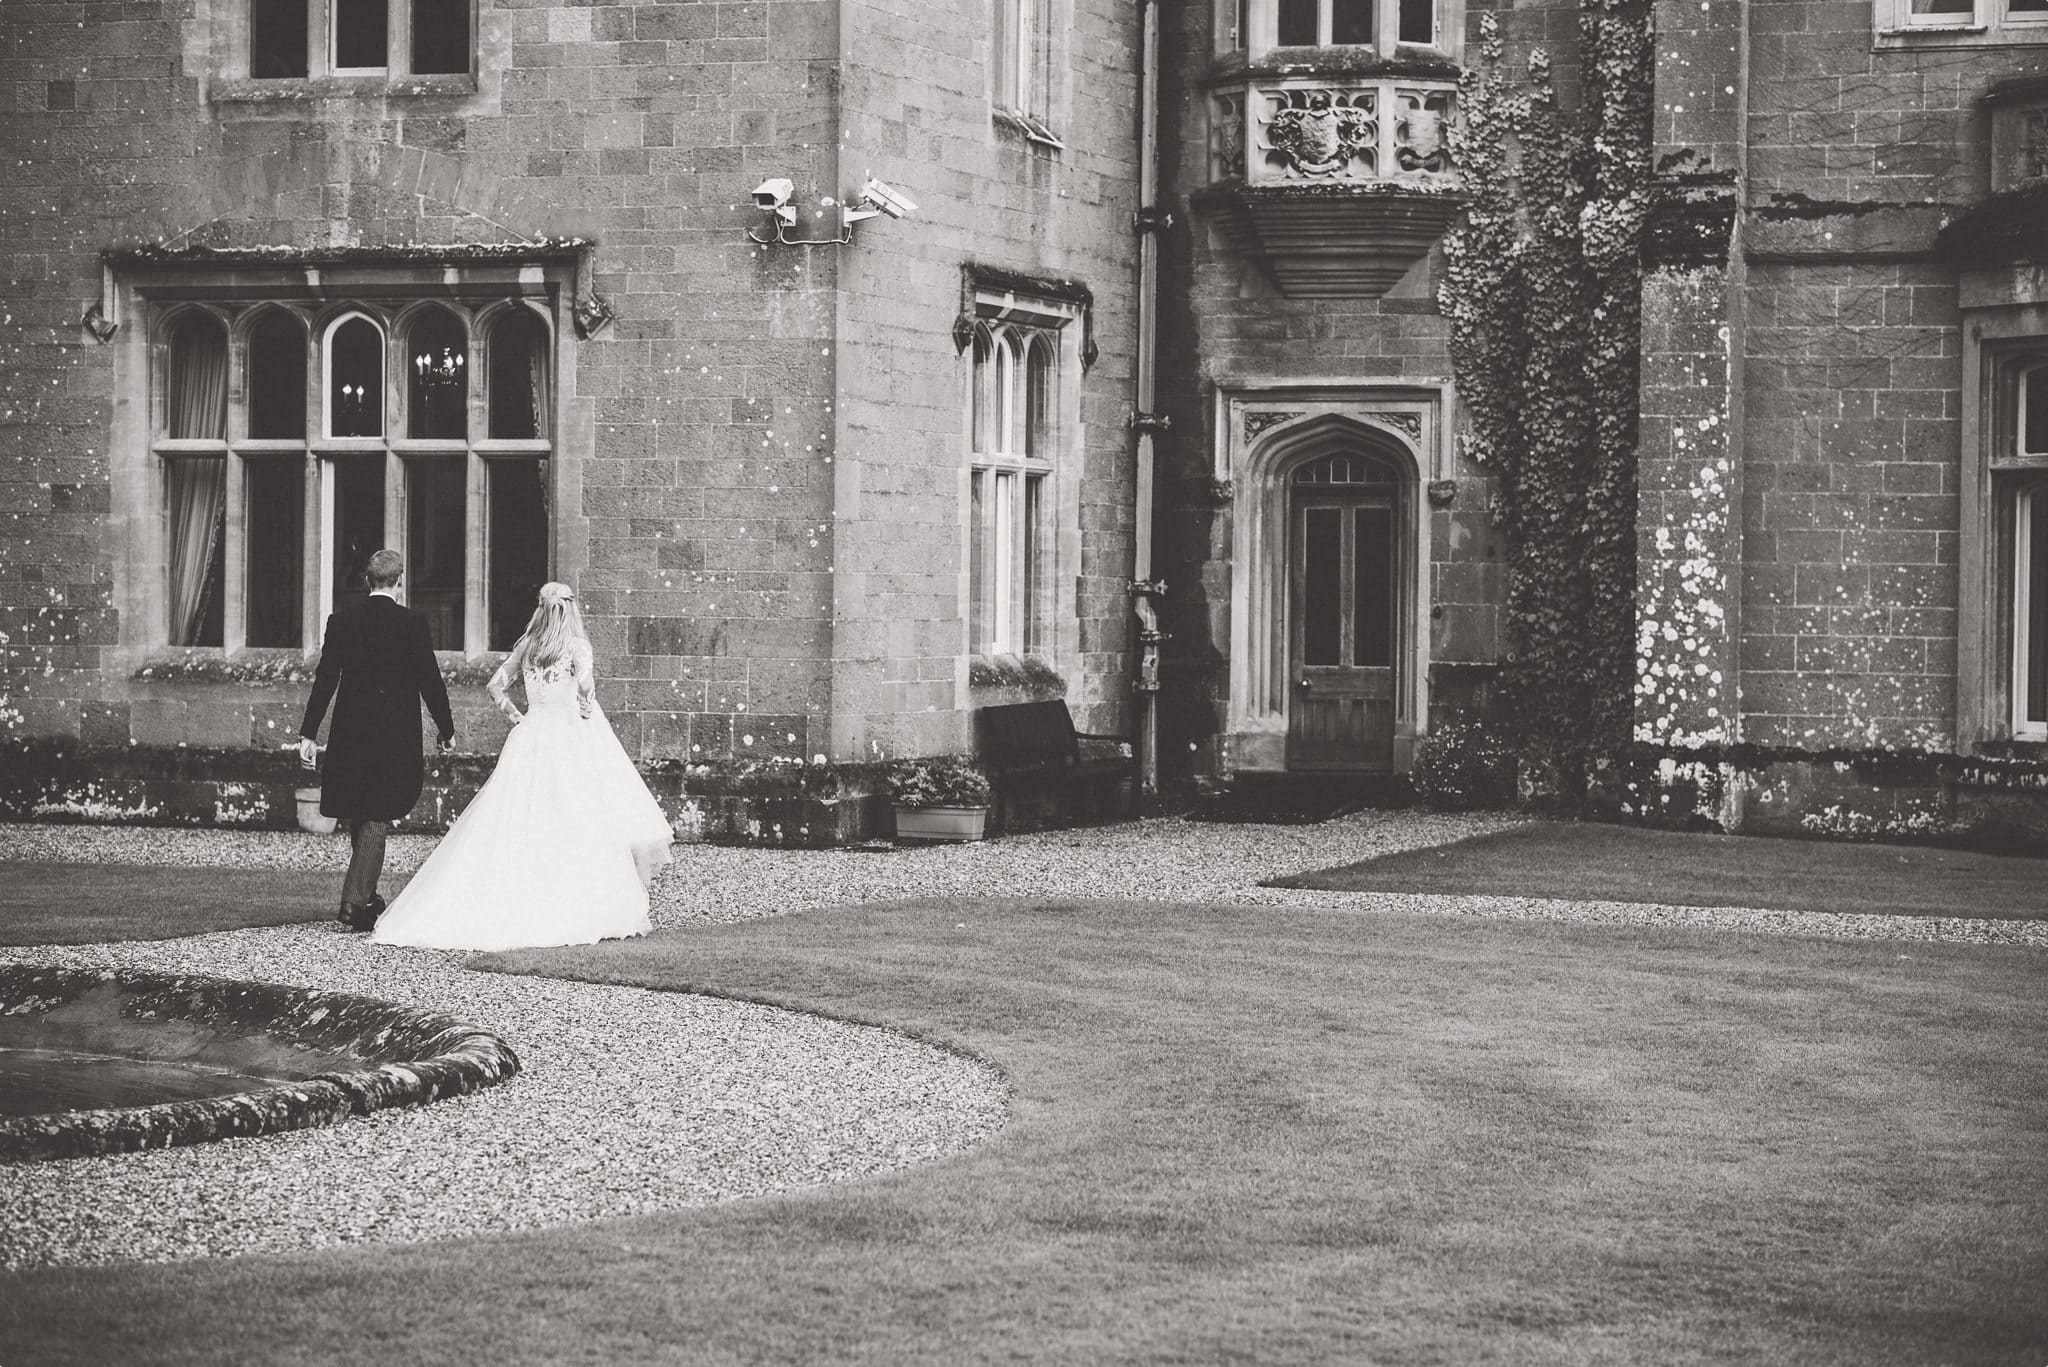 st-audries-park-wedding-maria-assia-photography-636